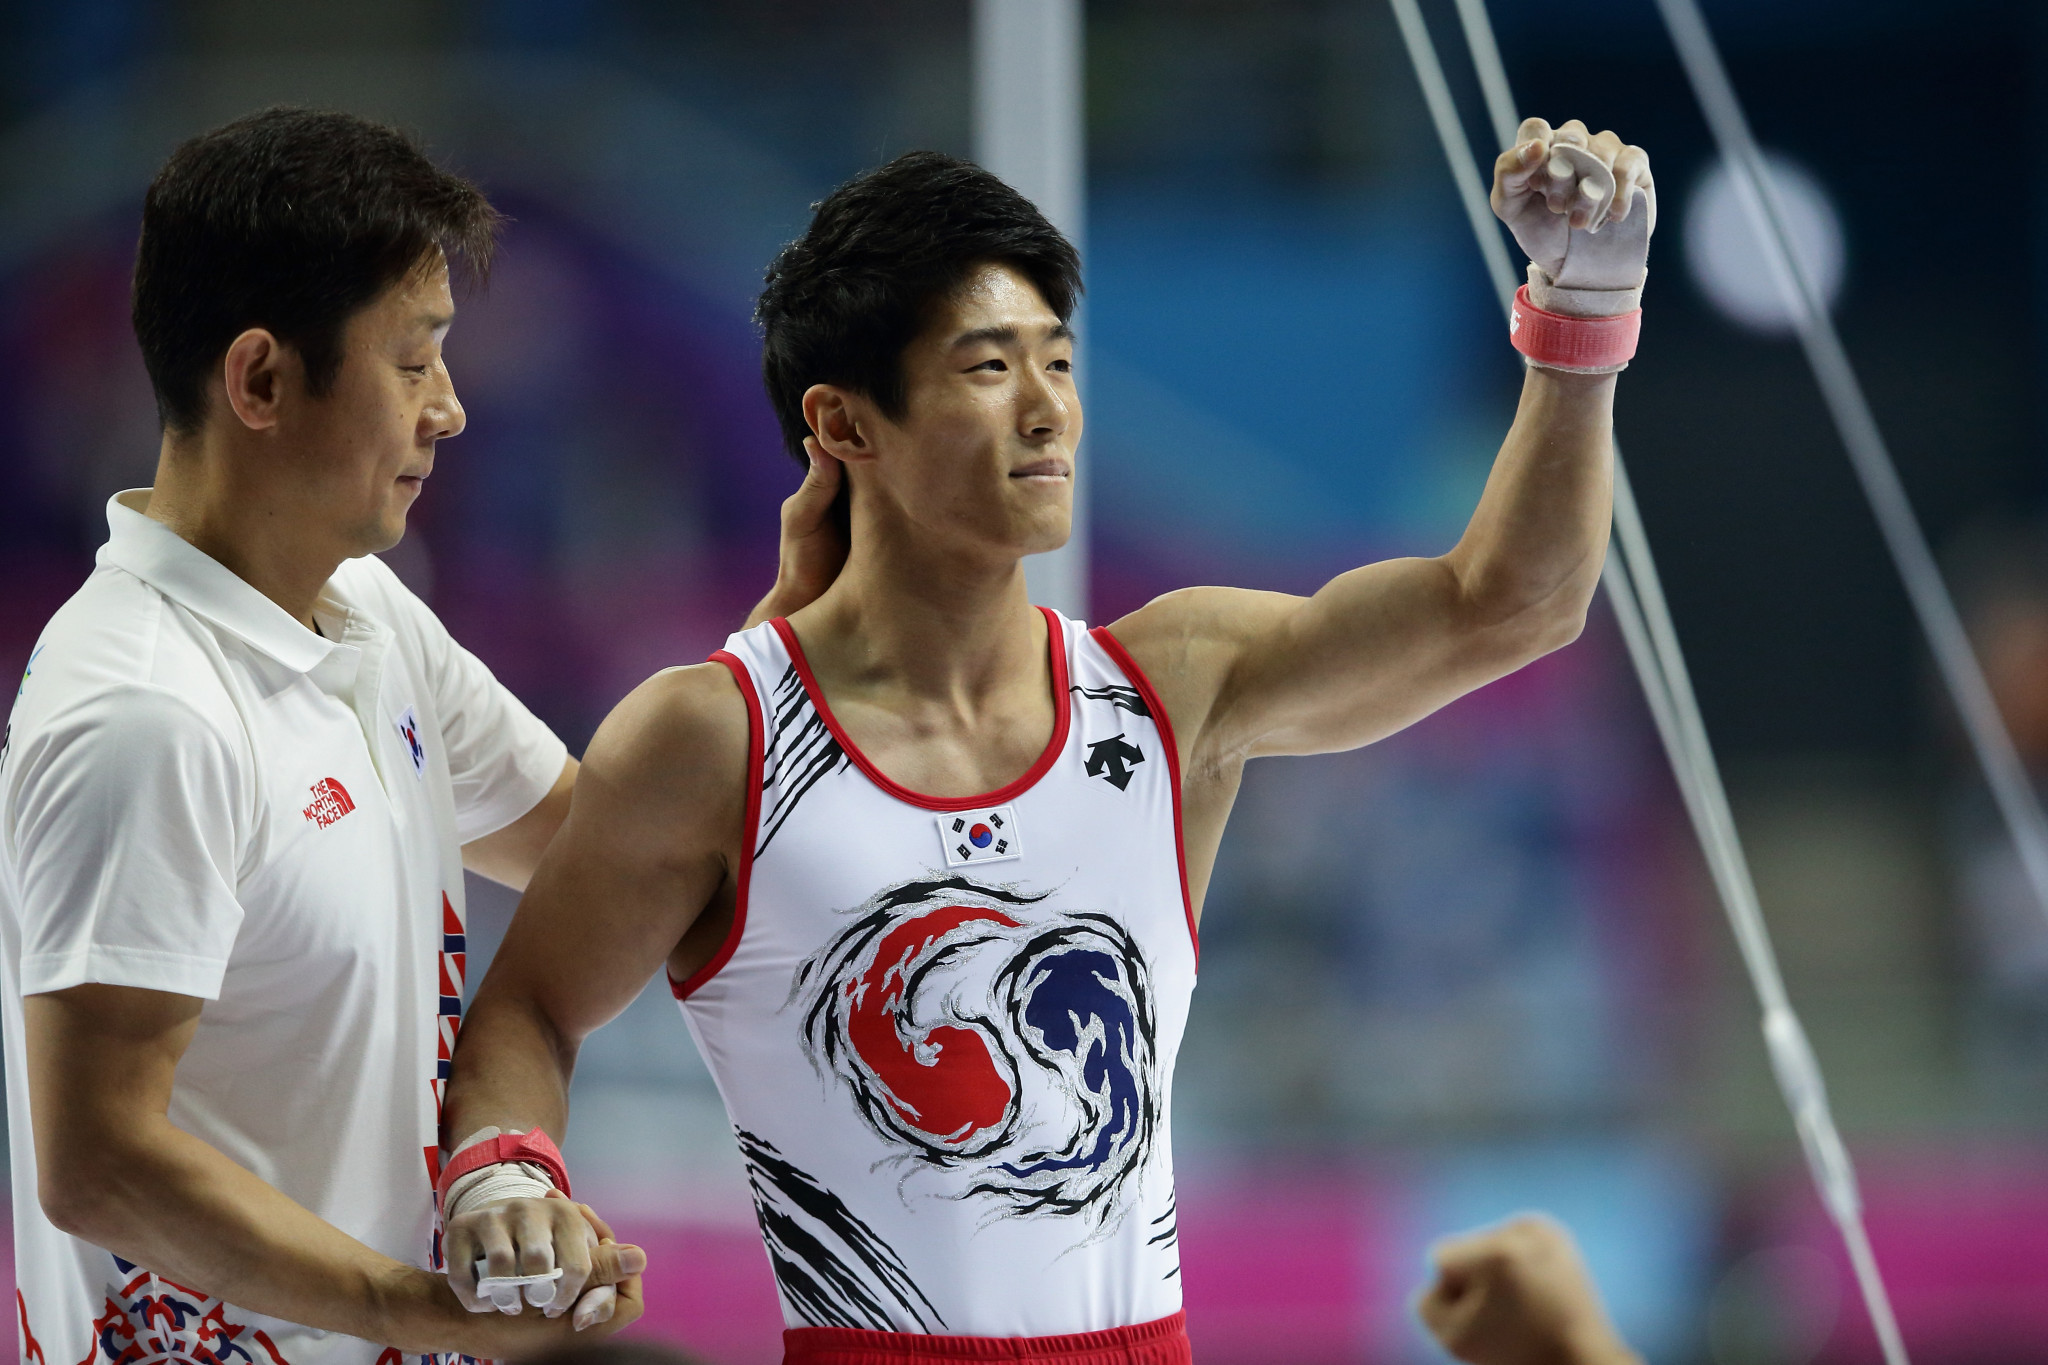 London Olympic champion Hakseon Yang won the men's vault today in Baku ©Getty Images